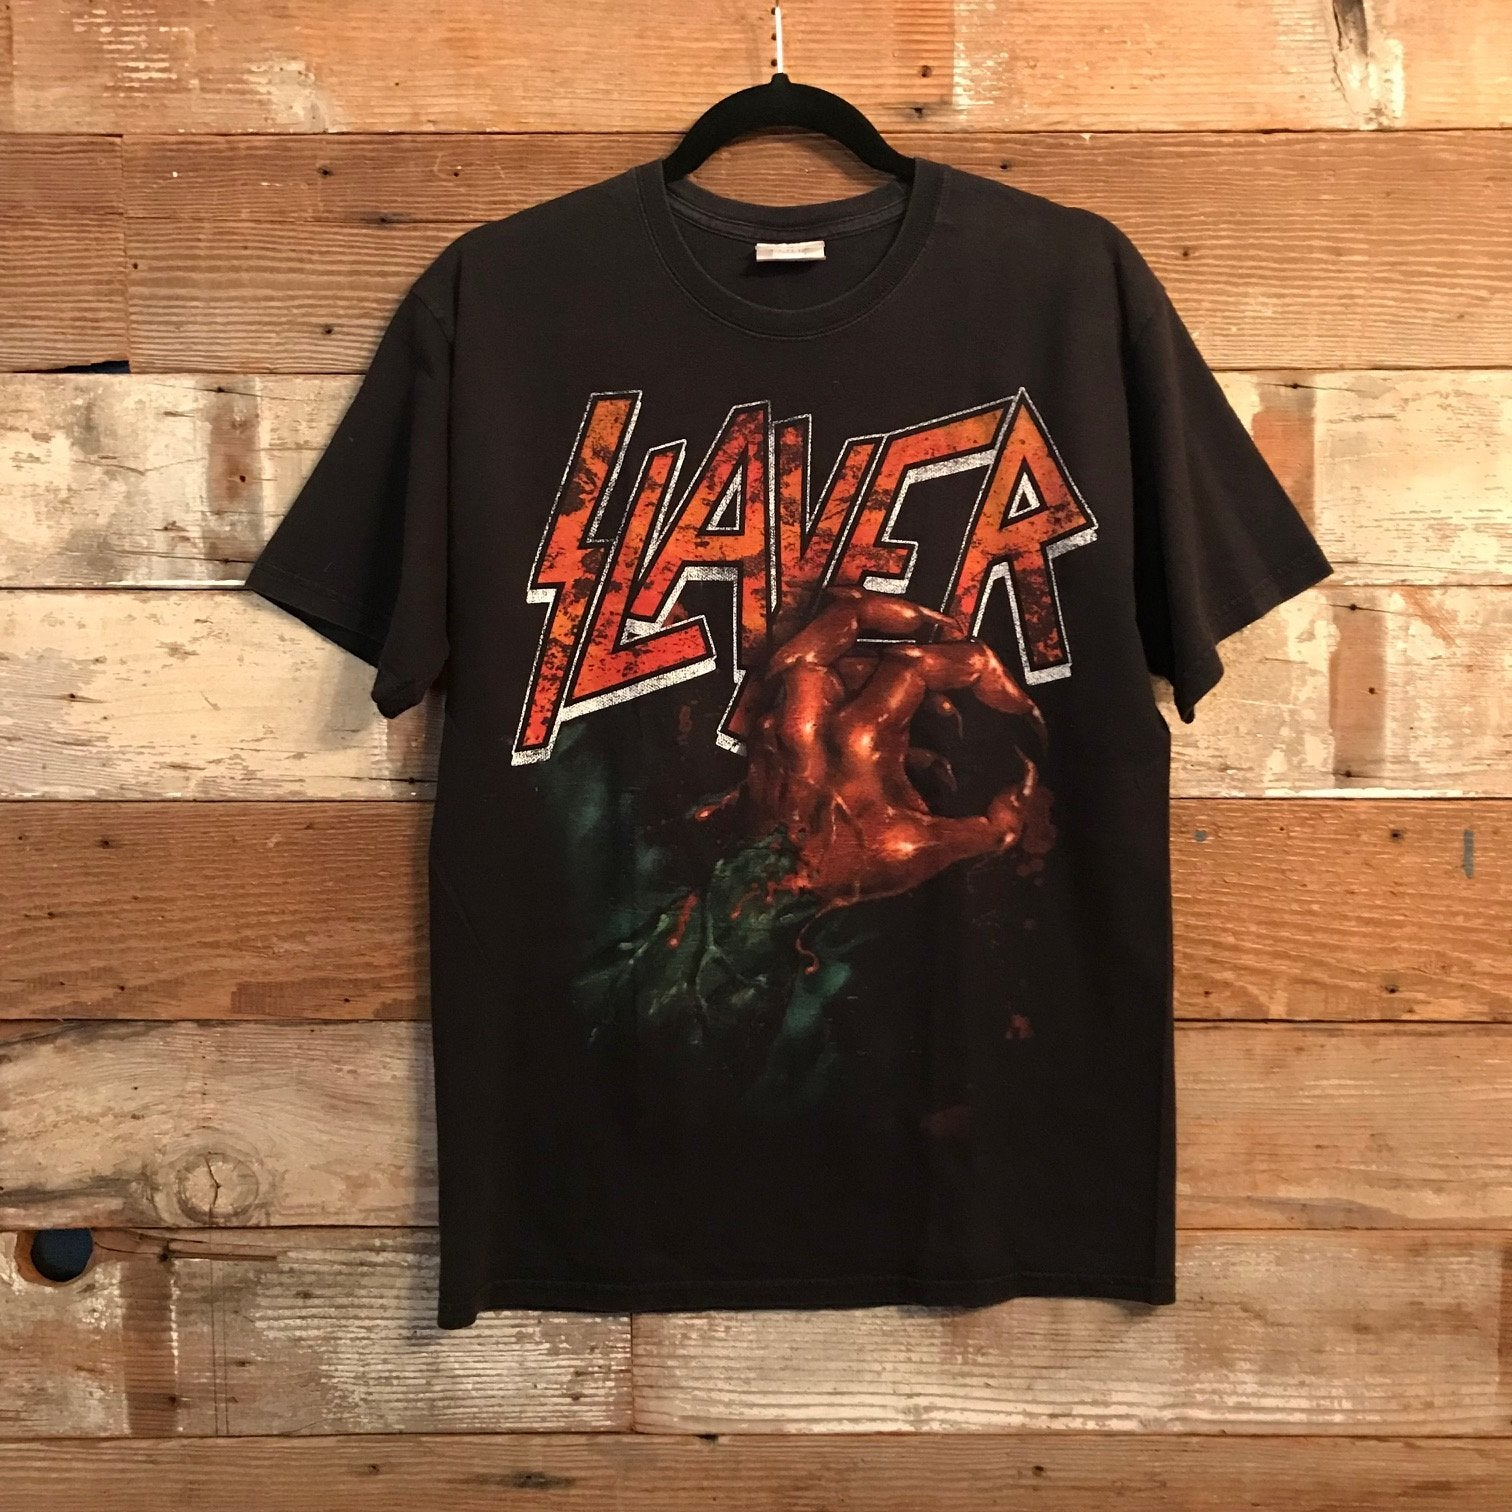 SLAYER - Deamon Hand T-shirt (M)